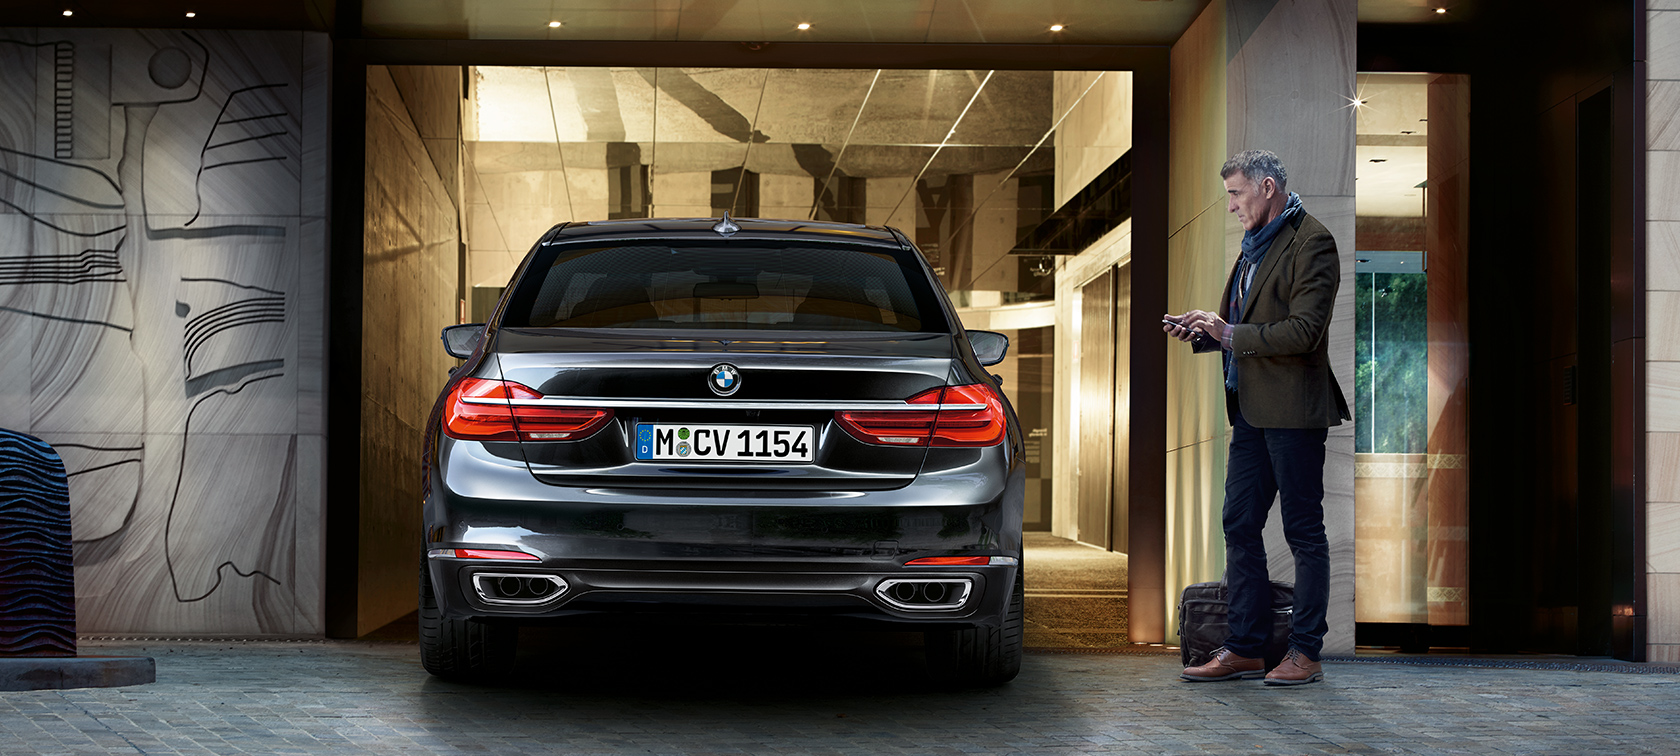 Innovative functionality in the BMW 7 Series